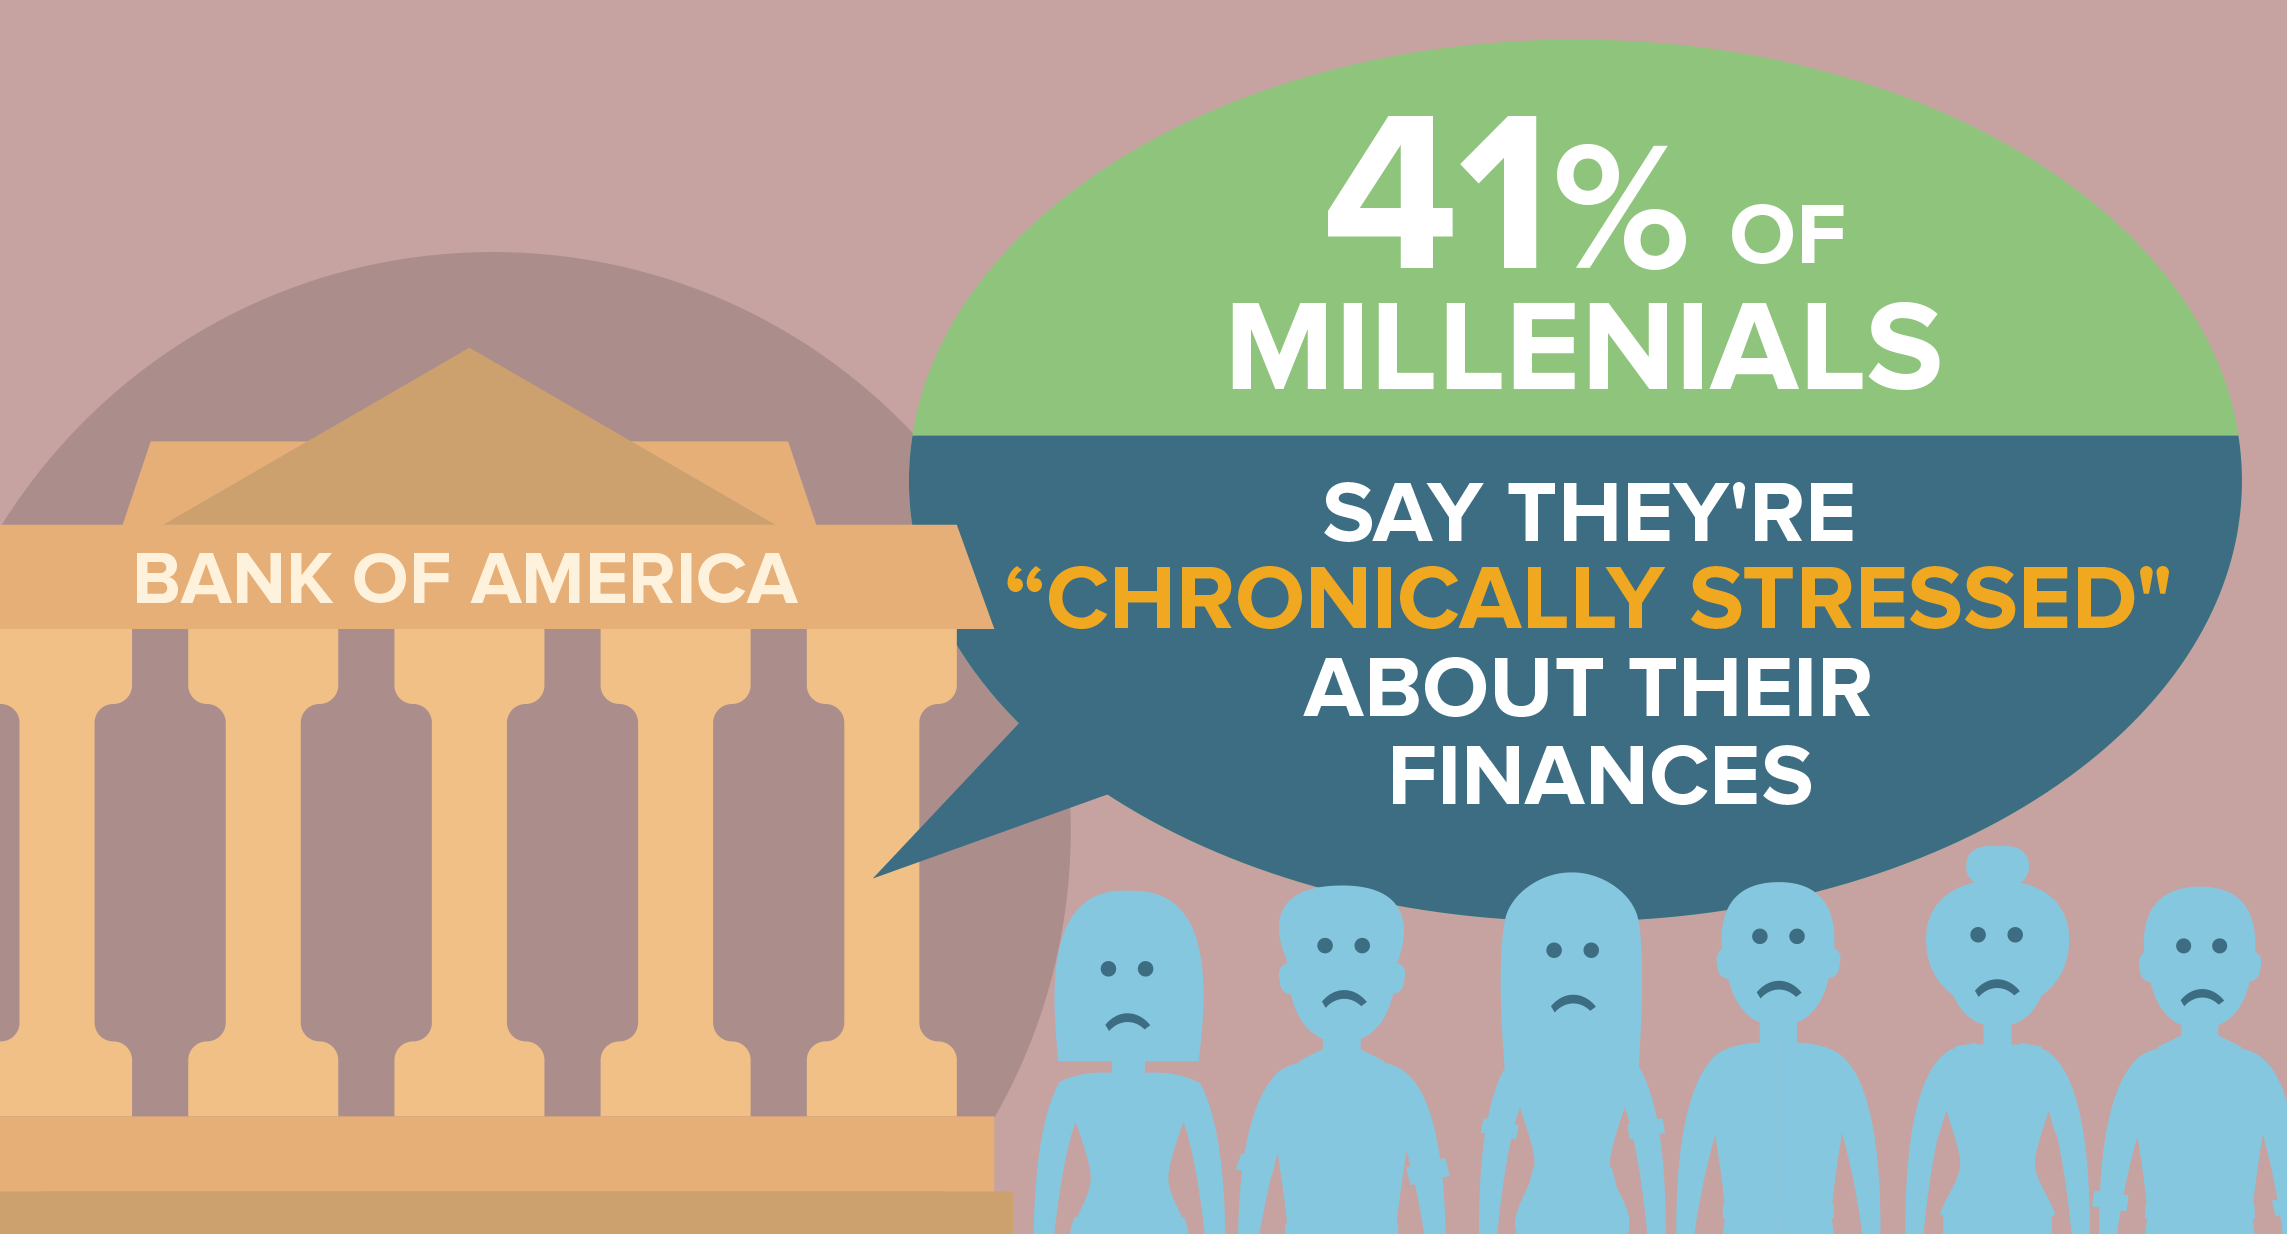 41% of millennials say they're chronically stressed